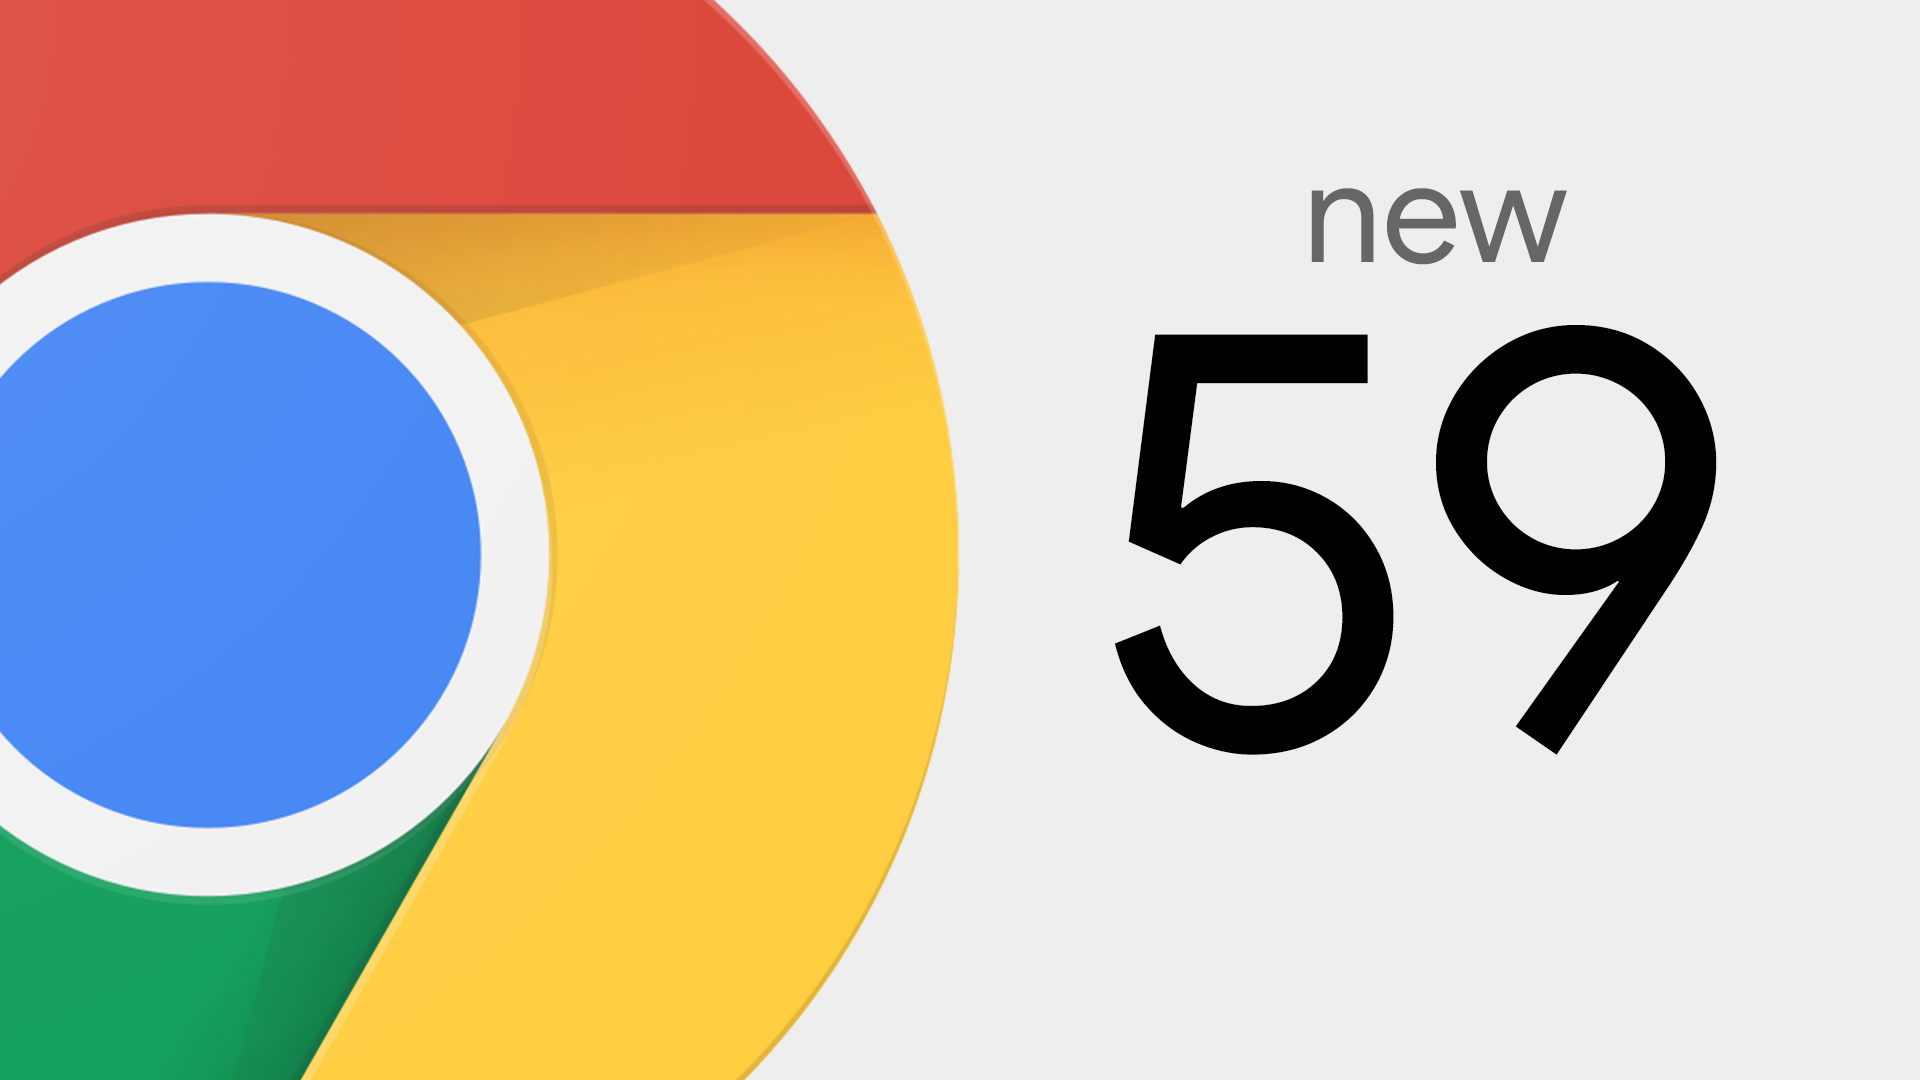 Cropped Chrome logo on the left, version number on the right.